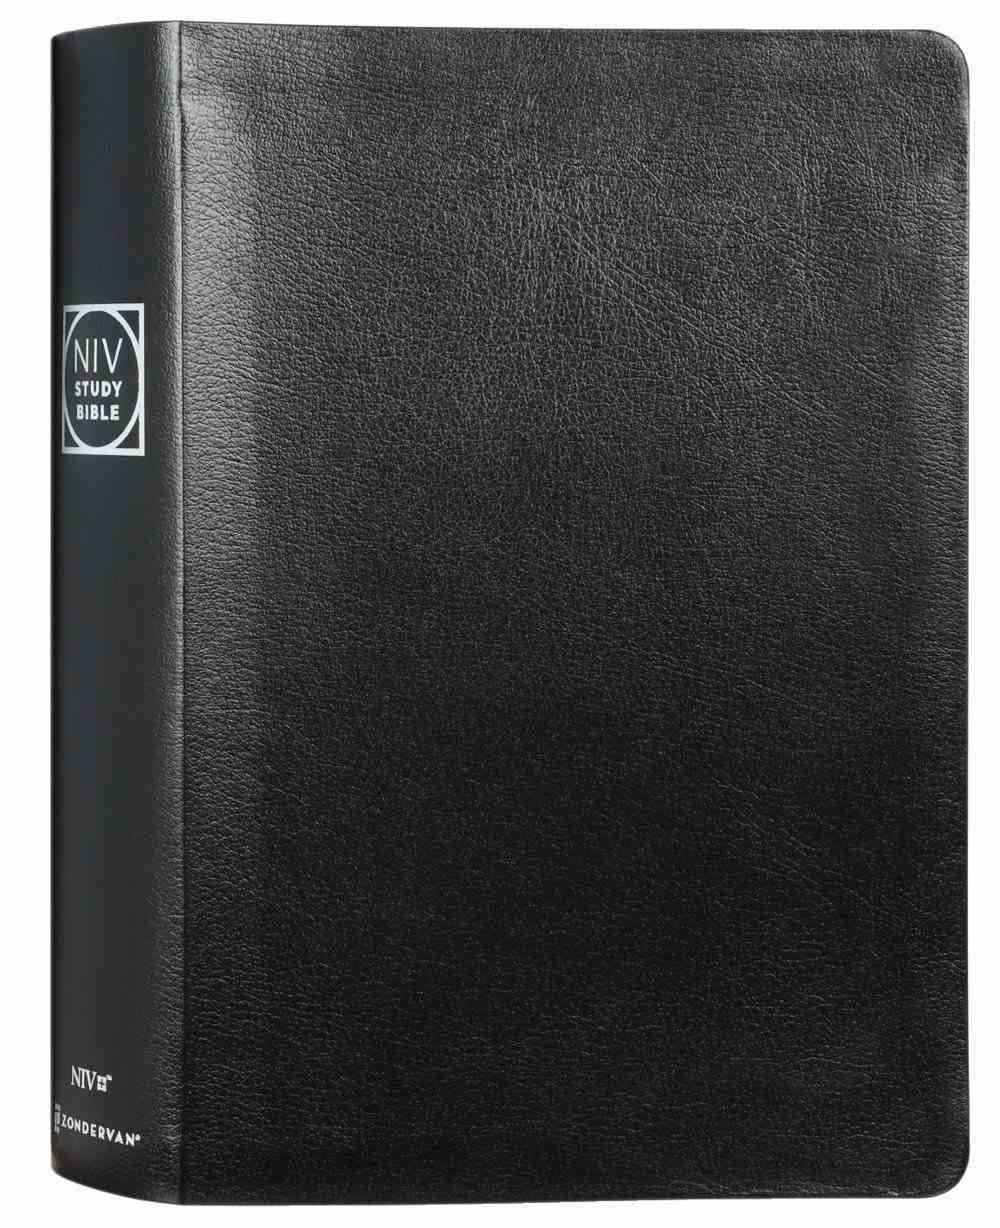 NIV Study Bible Large Print Black Indexed (Red Letter Edition) Fully Revised Edition (2020) Bonded Leather